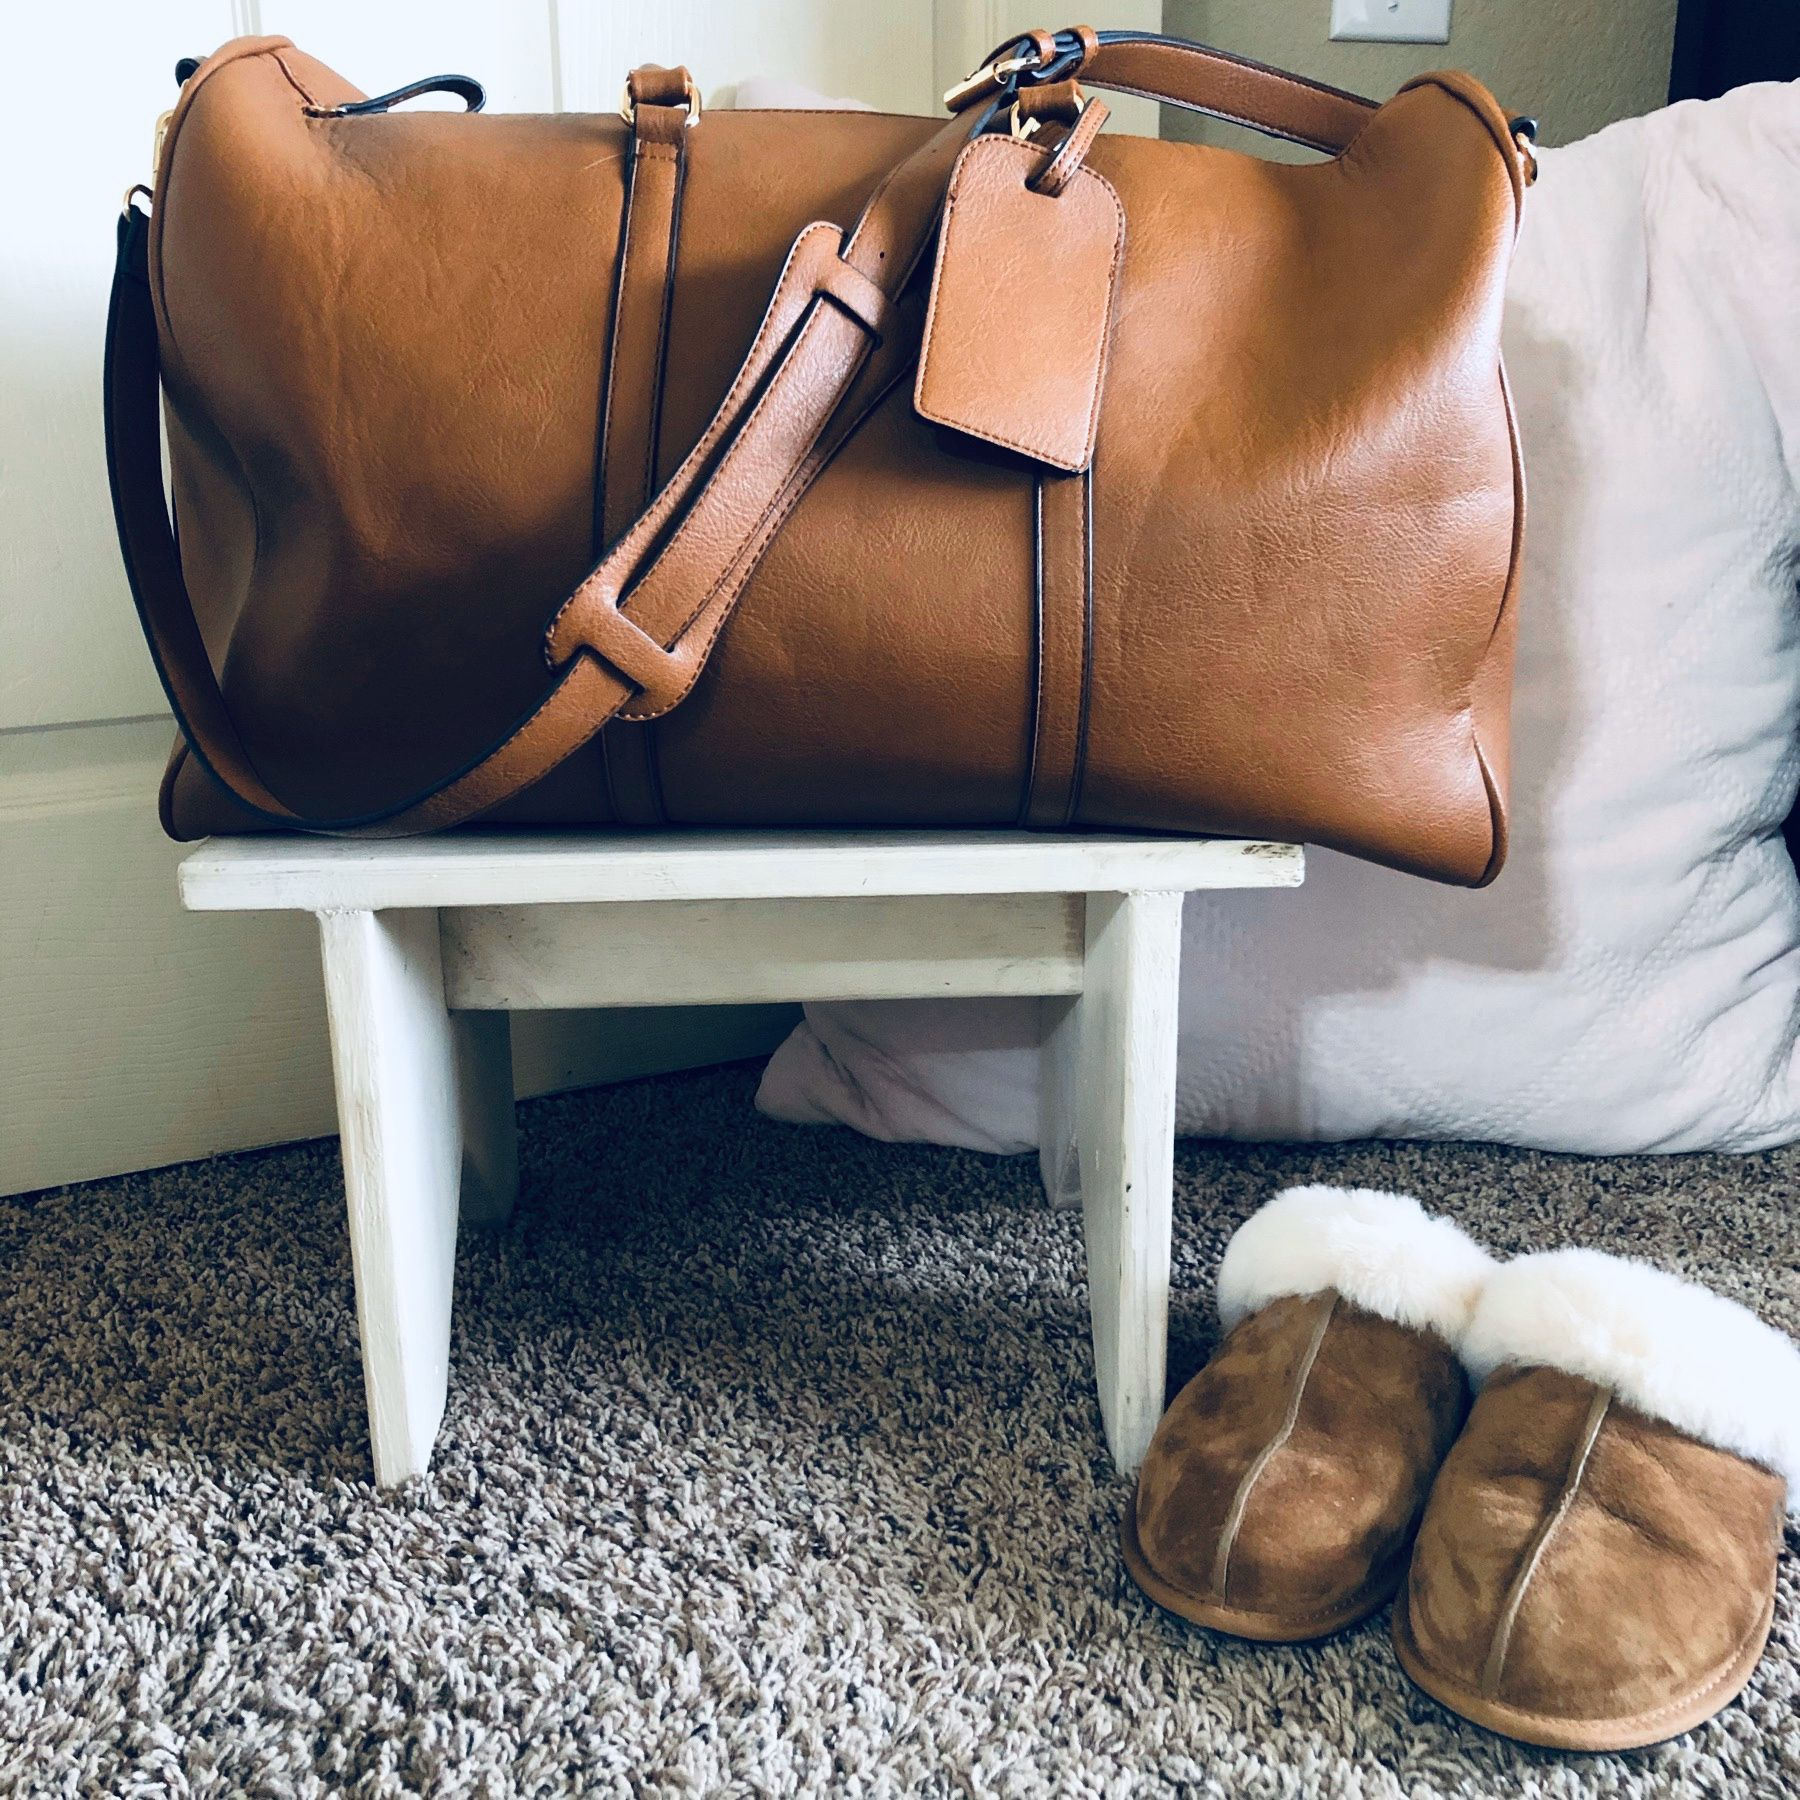 Traveling for the holidays This solesociety bag is the perfect weekender or carryon bag This vegan leather bag is usually 8998 but the cognac pictured and toasted almond...